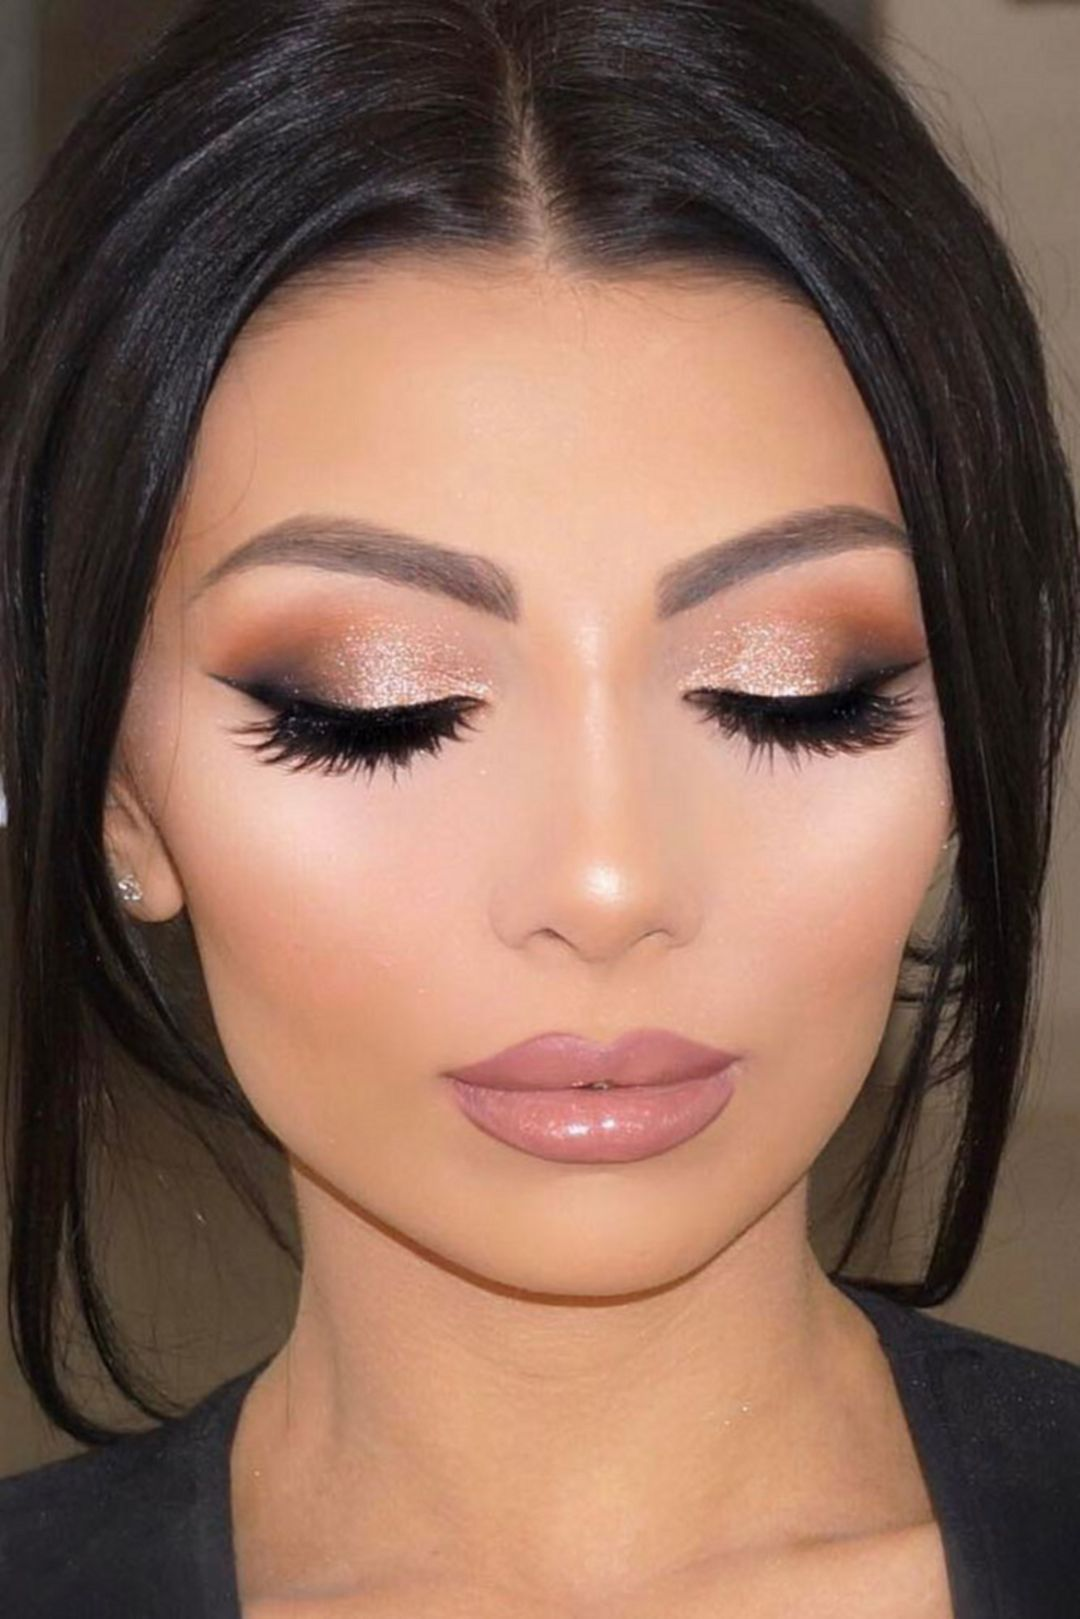 Pin By Gracie Rogers On Beauty Pinterest Prom Makeup Makeup And